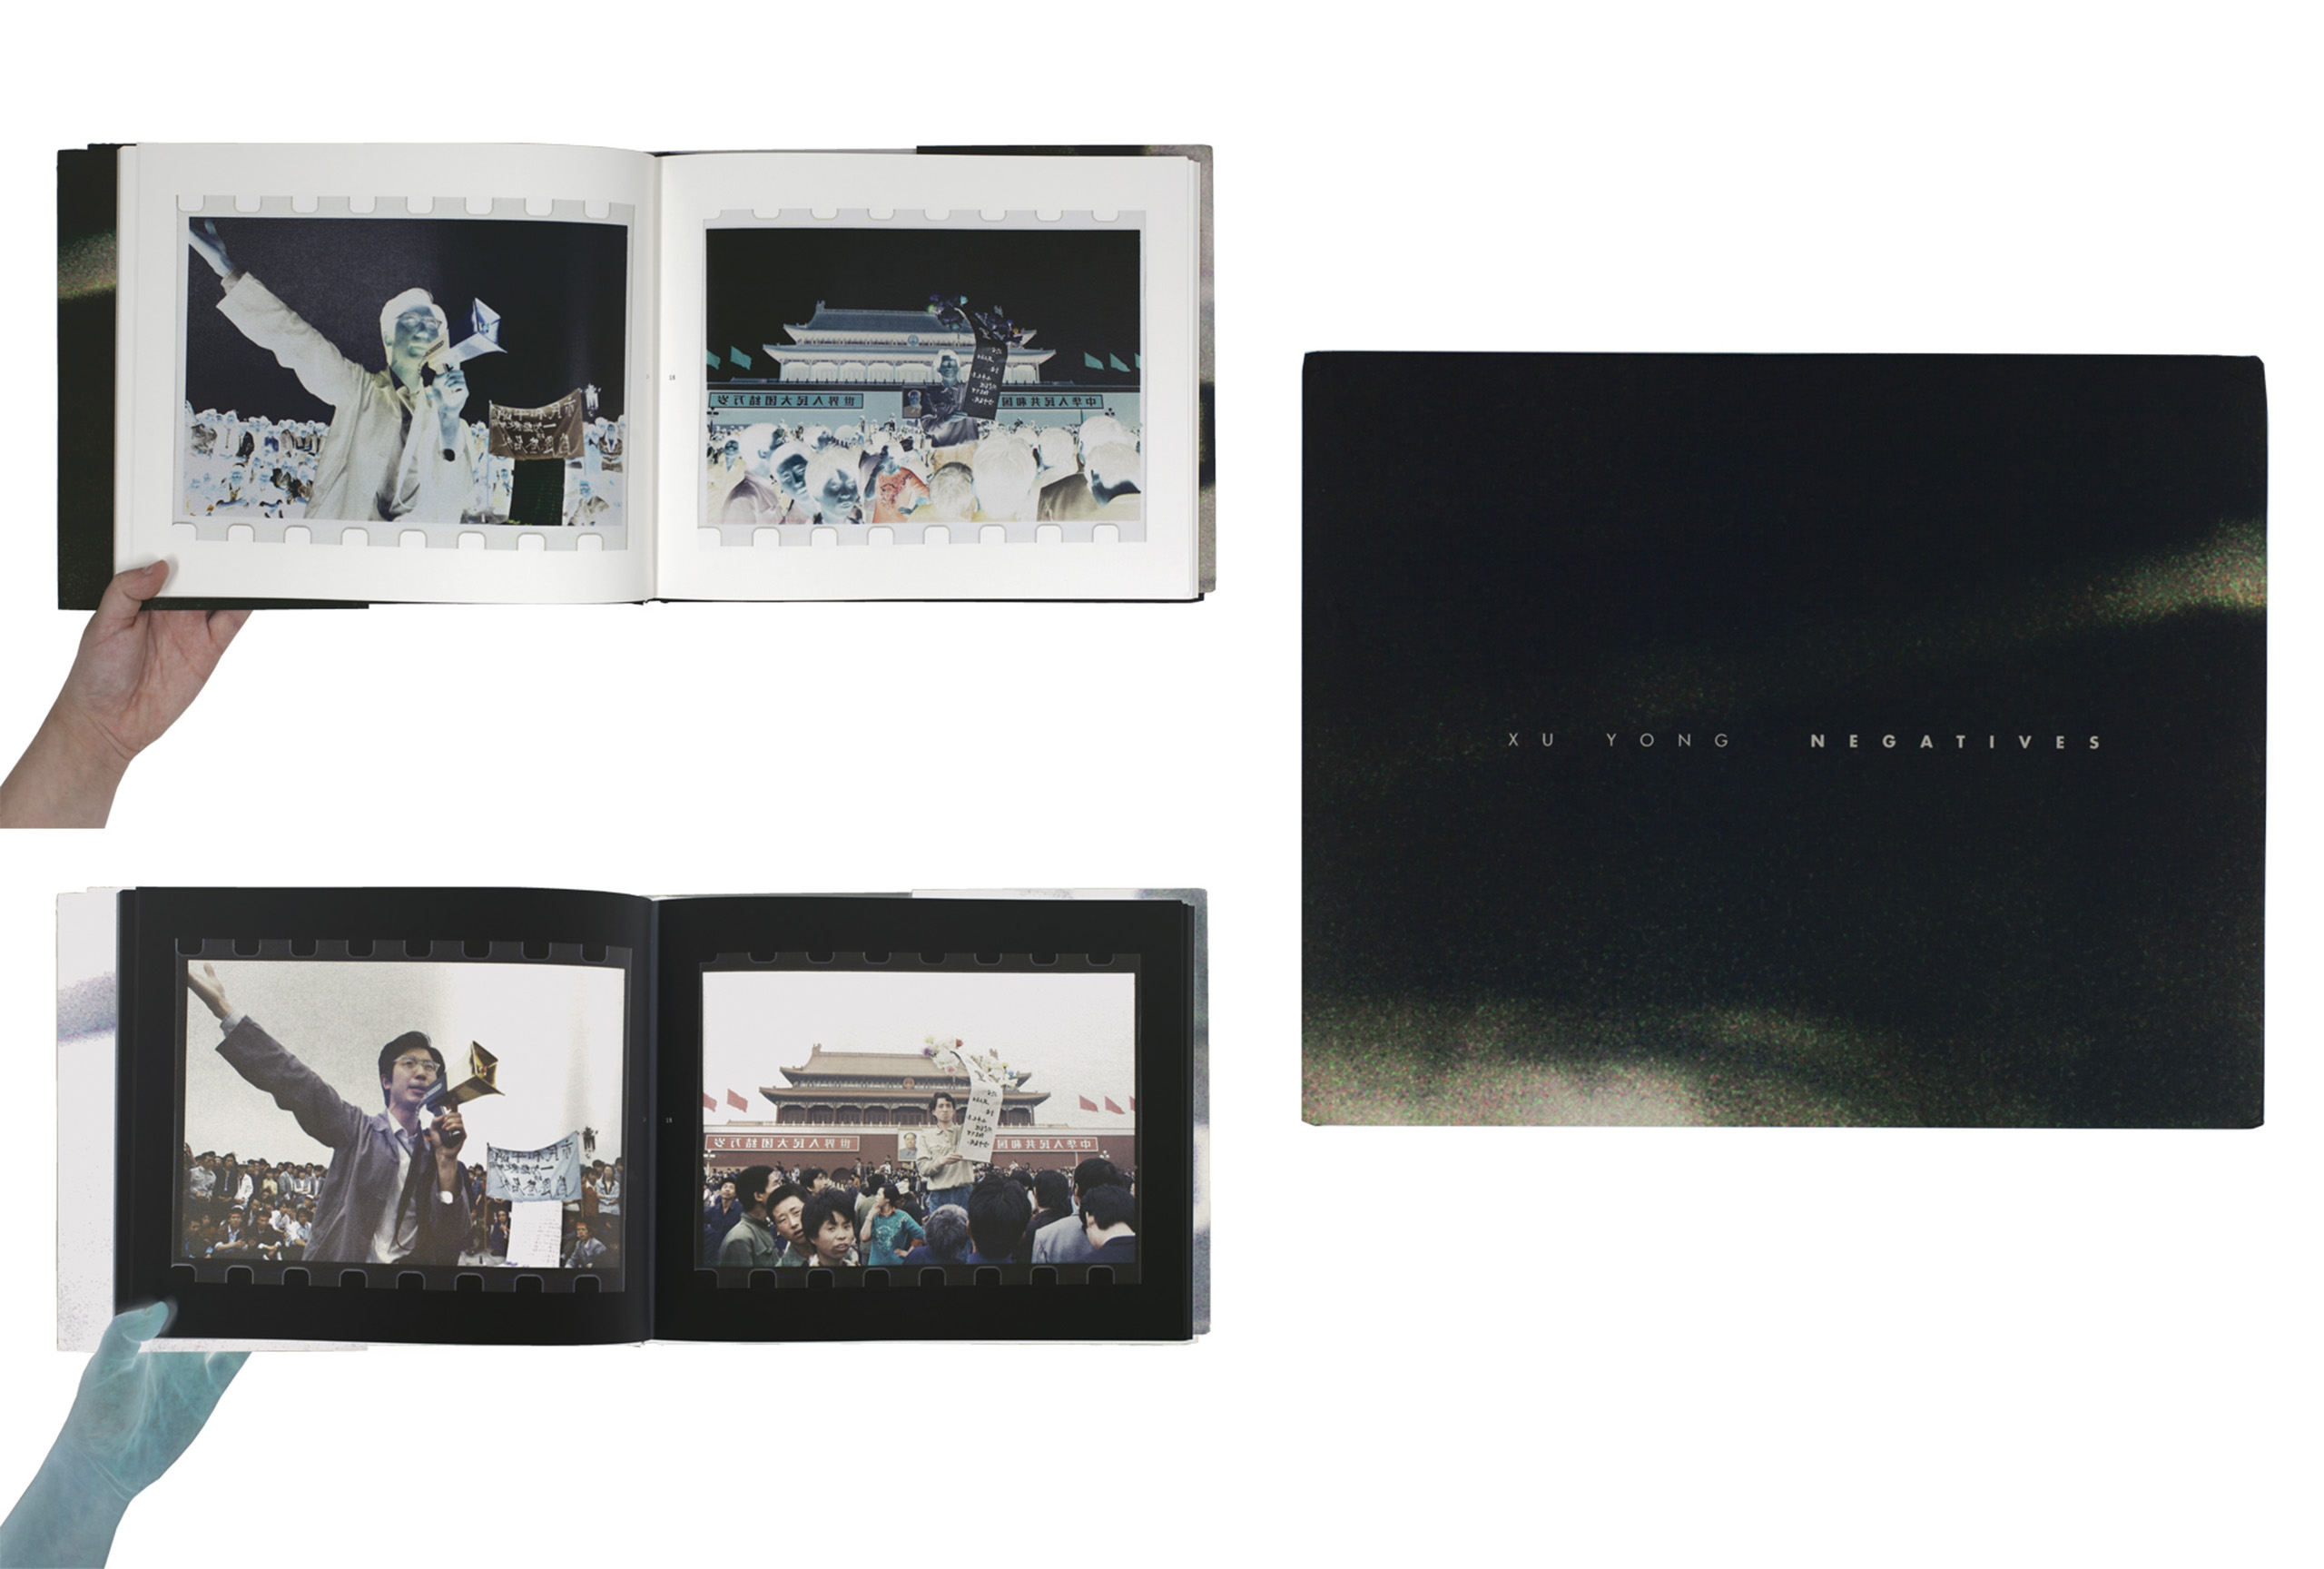 Negatives by Xu Yong published by New Century Press. Short-listed for PhotoBook of the Year.